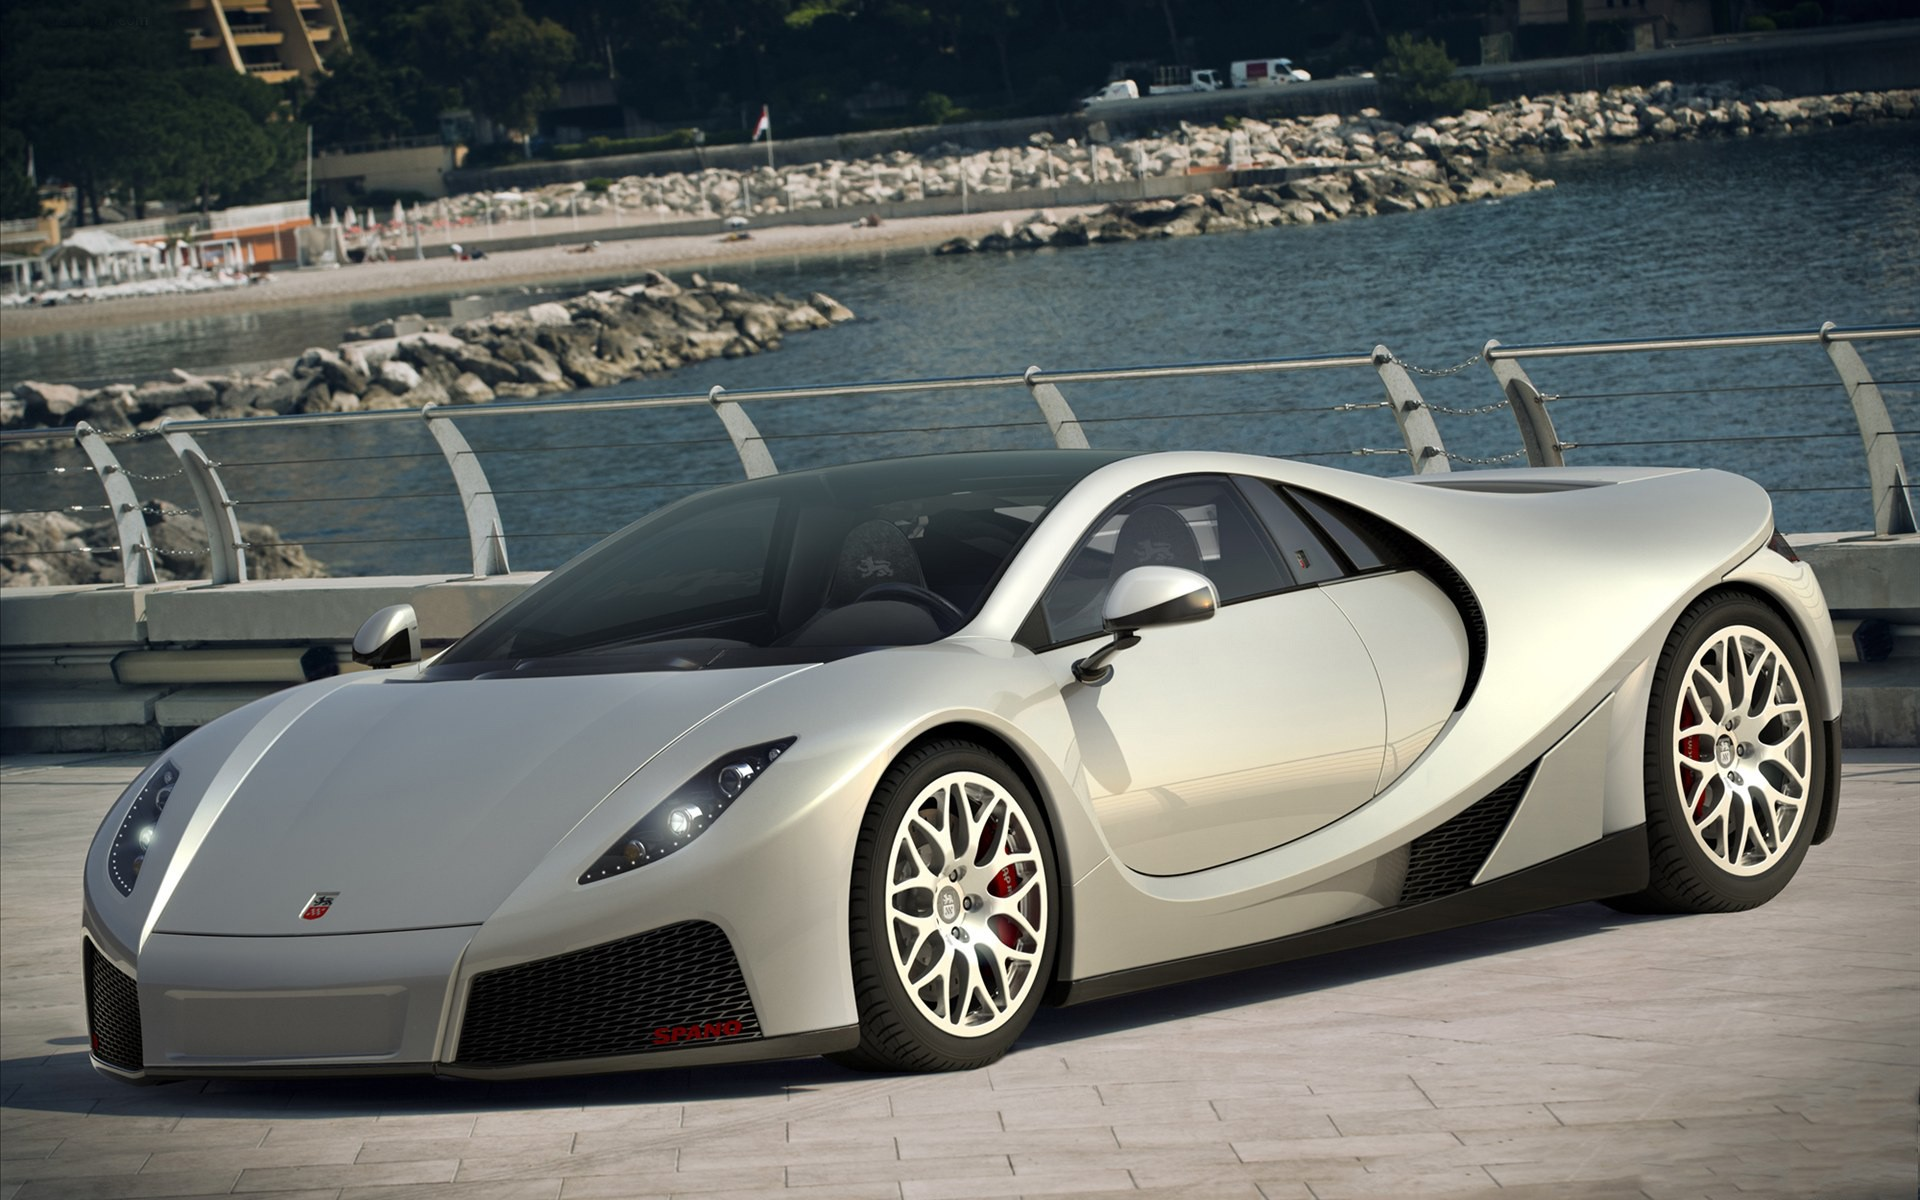 Gta Spano 2012 Concept Wallpaper Hd Car Wallpapers Id 2534